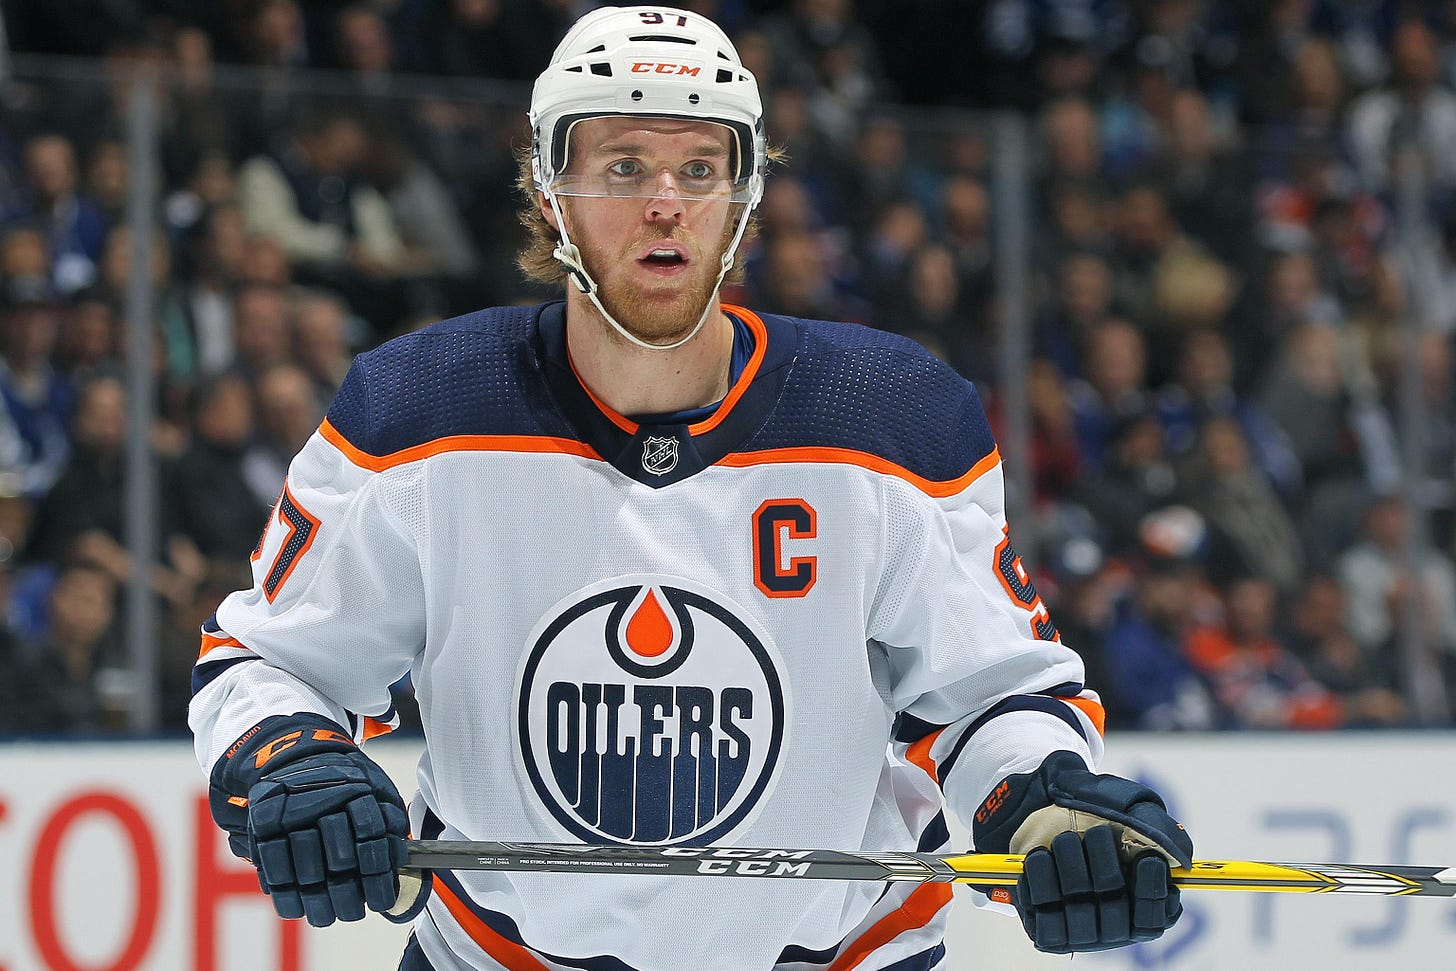 Oilers' Connor McDavid Expected to Miss 2-3 Weeks Due to Quad Injury |  Bleacher Report | Latest News, Videos and Highlights